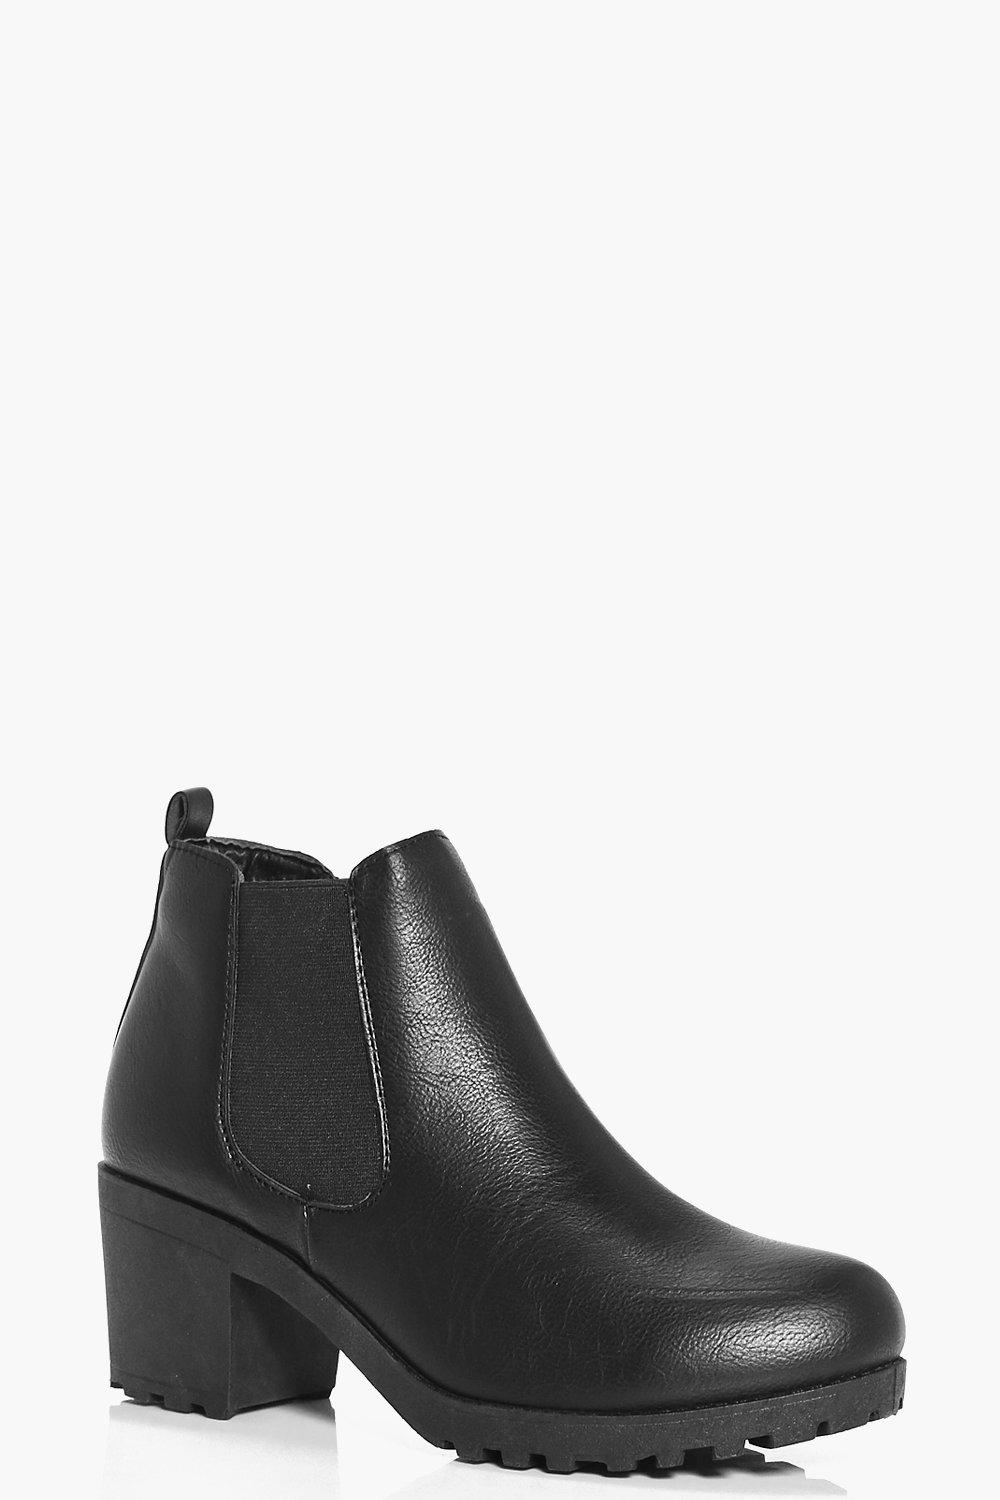 Lois Chunky Cleated Heel Chelsea Boot